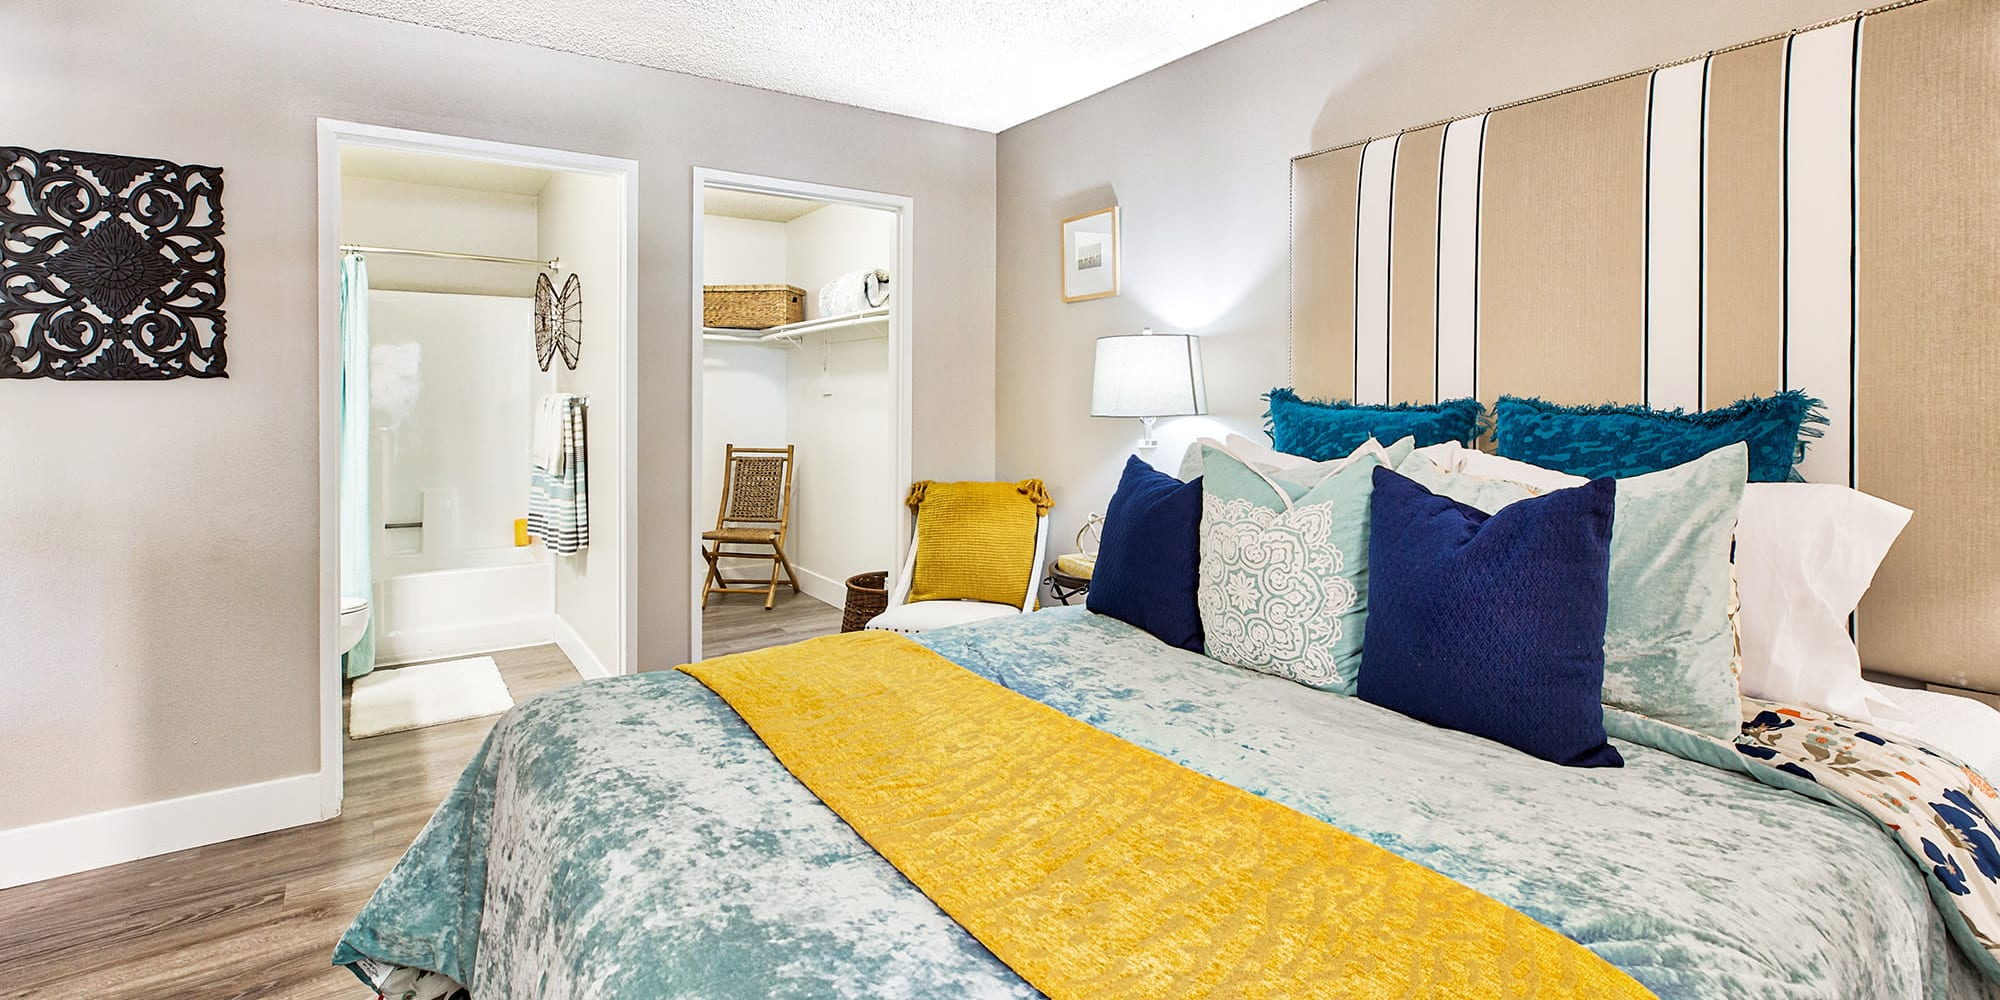 Modern furnishings in a model home's primary bedroom with an en suite bathroom and walk-in closet at Mountain Vista in Victorville, California